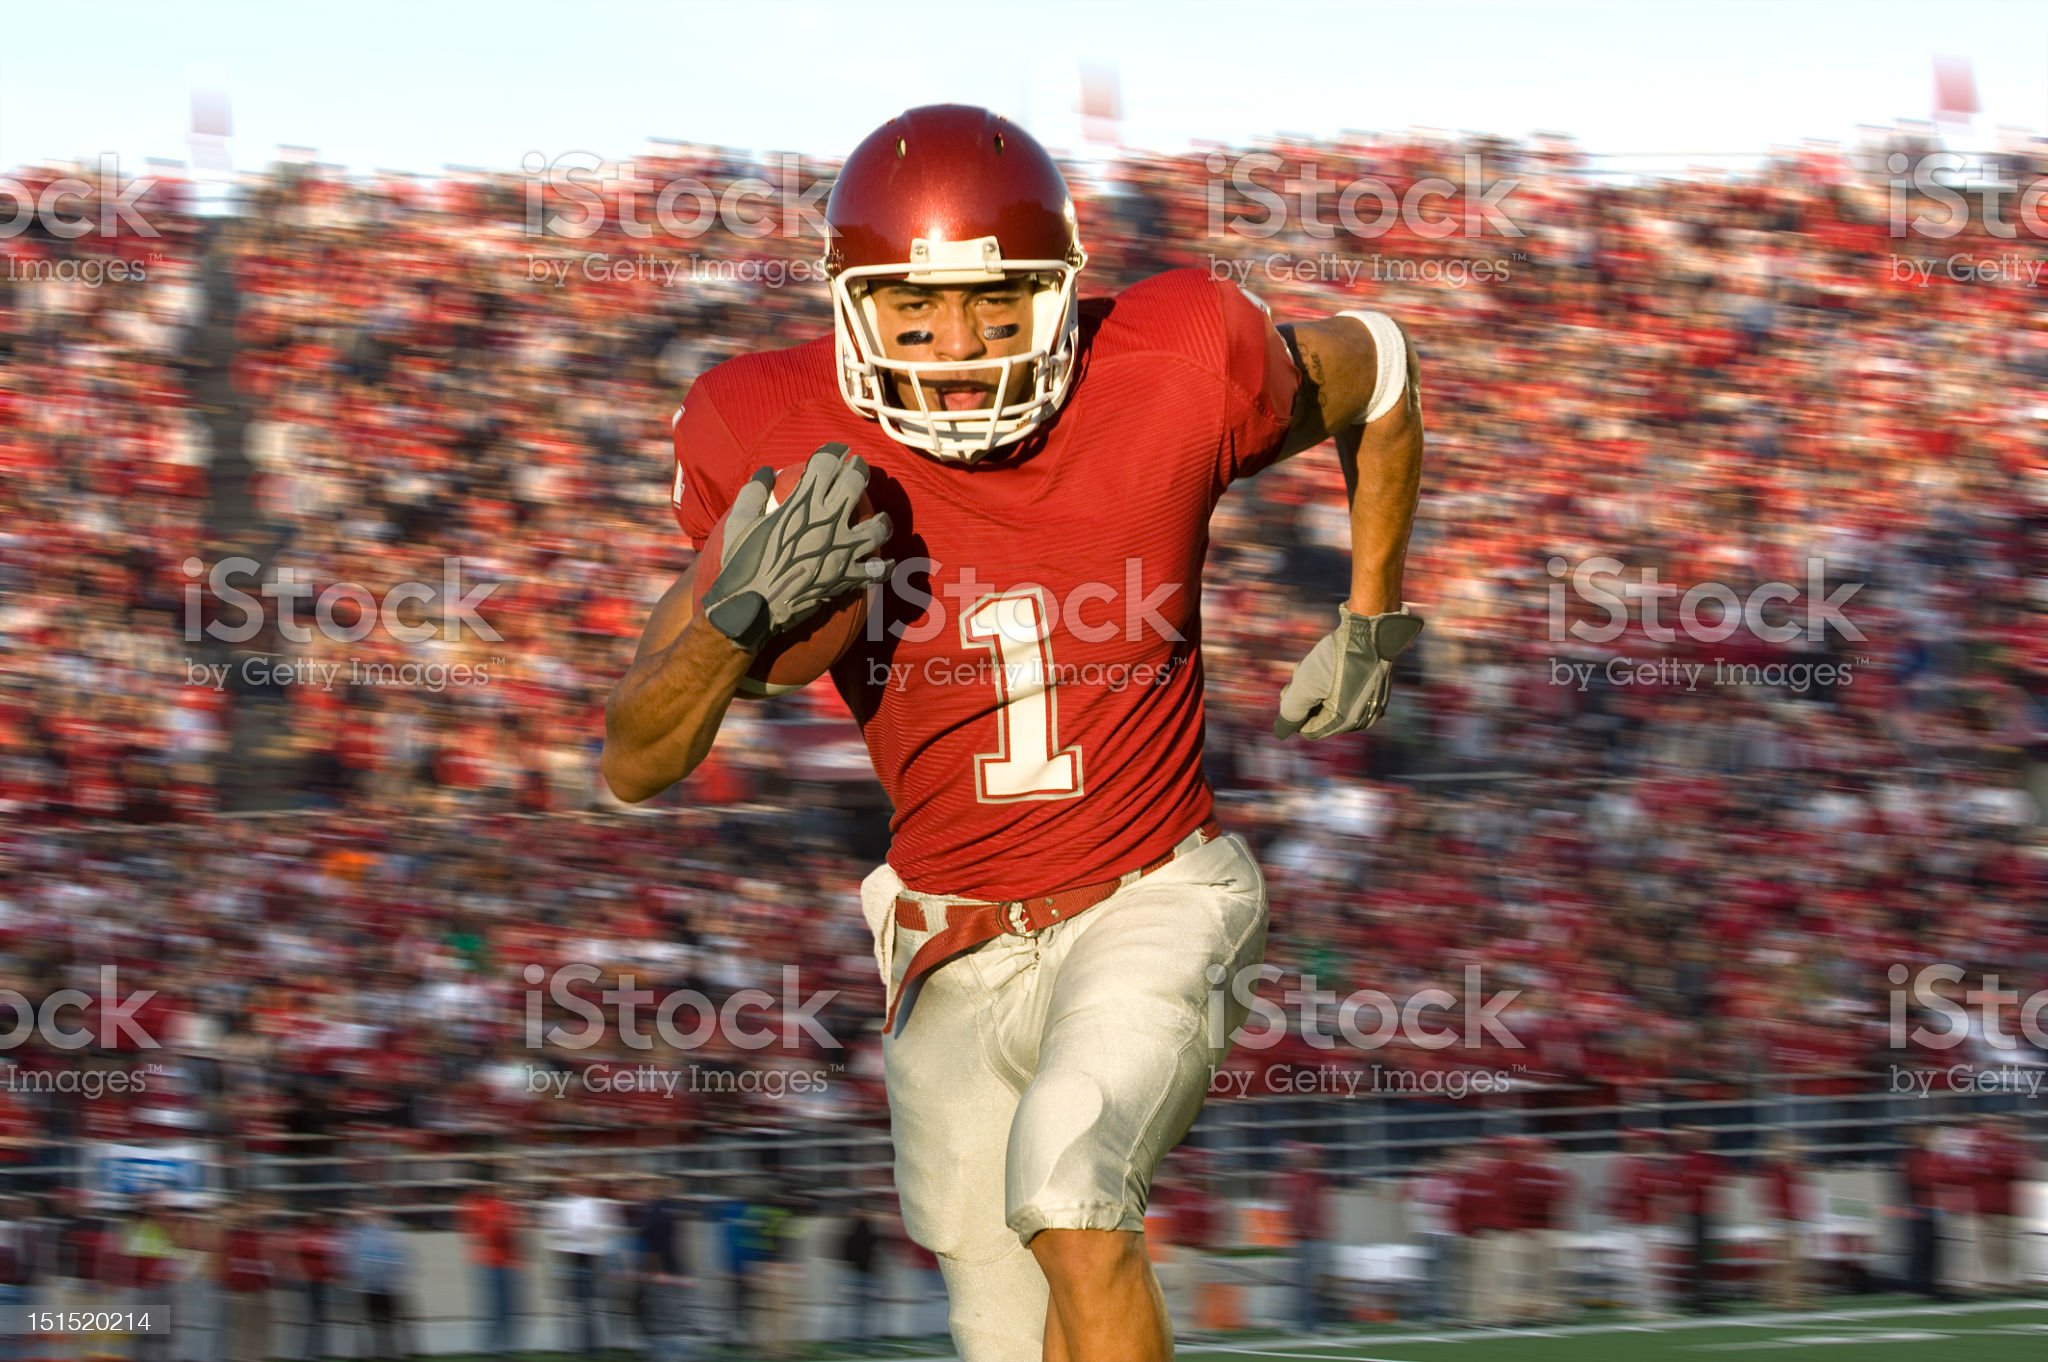 Football Running Back Sprinting Down the Field royalty-free stock photo